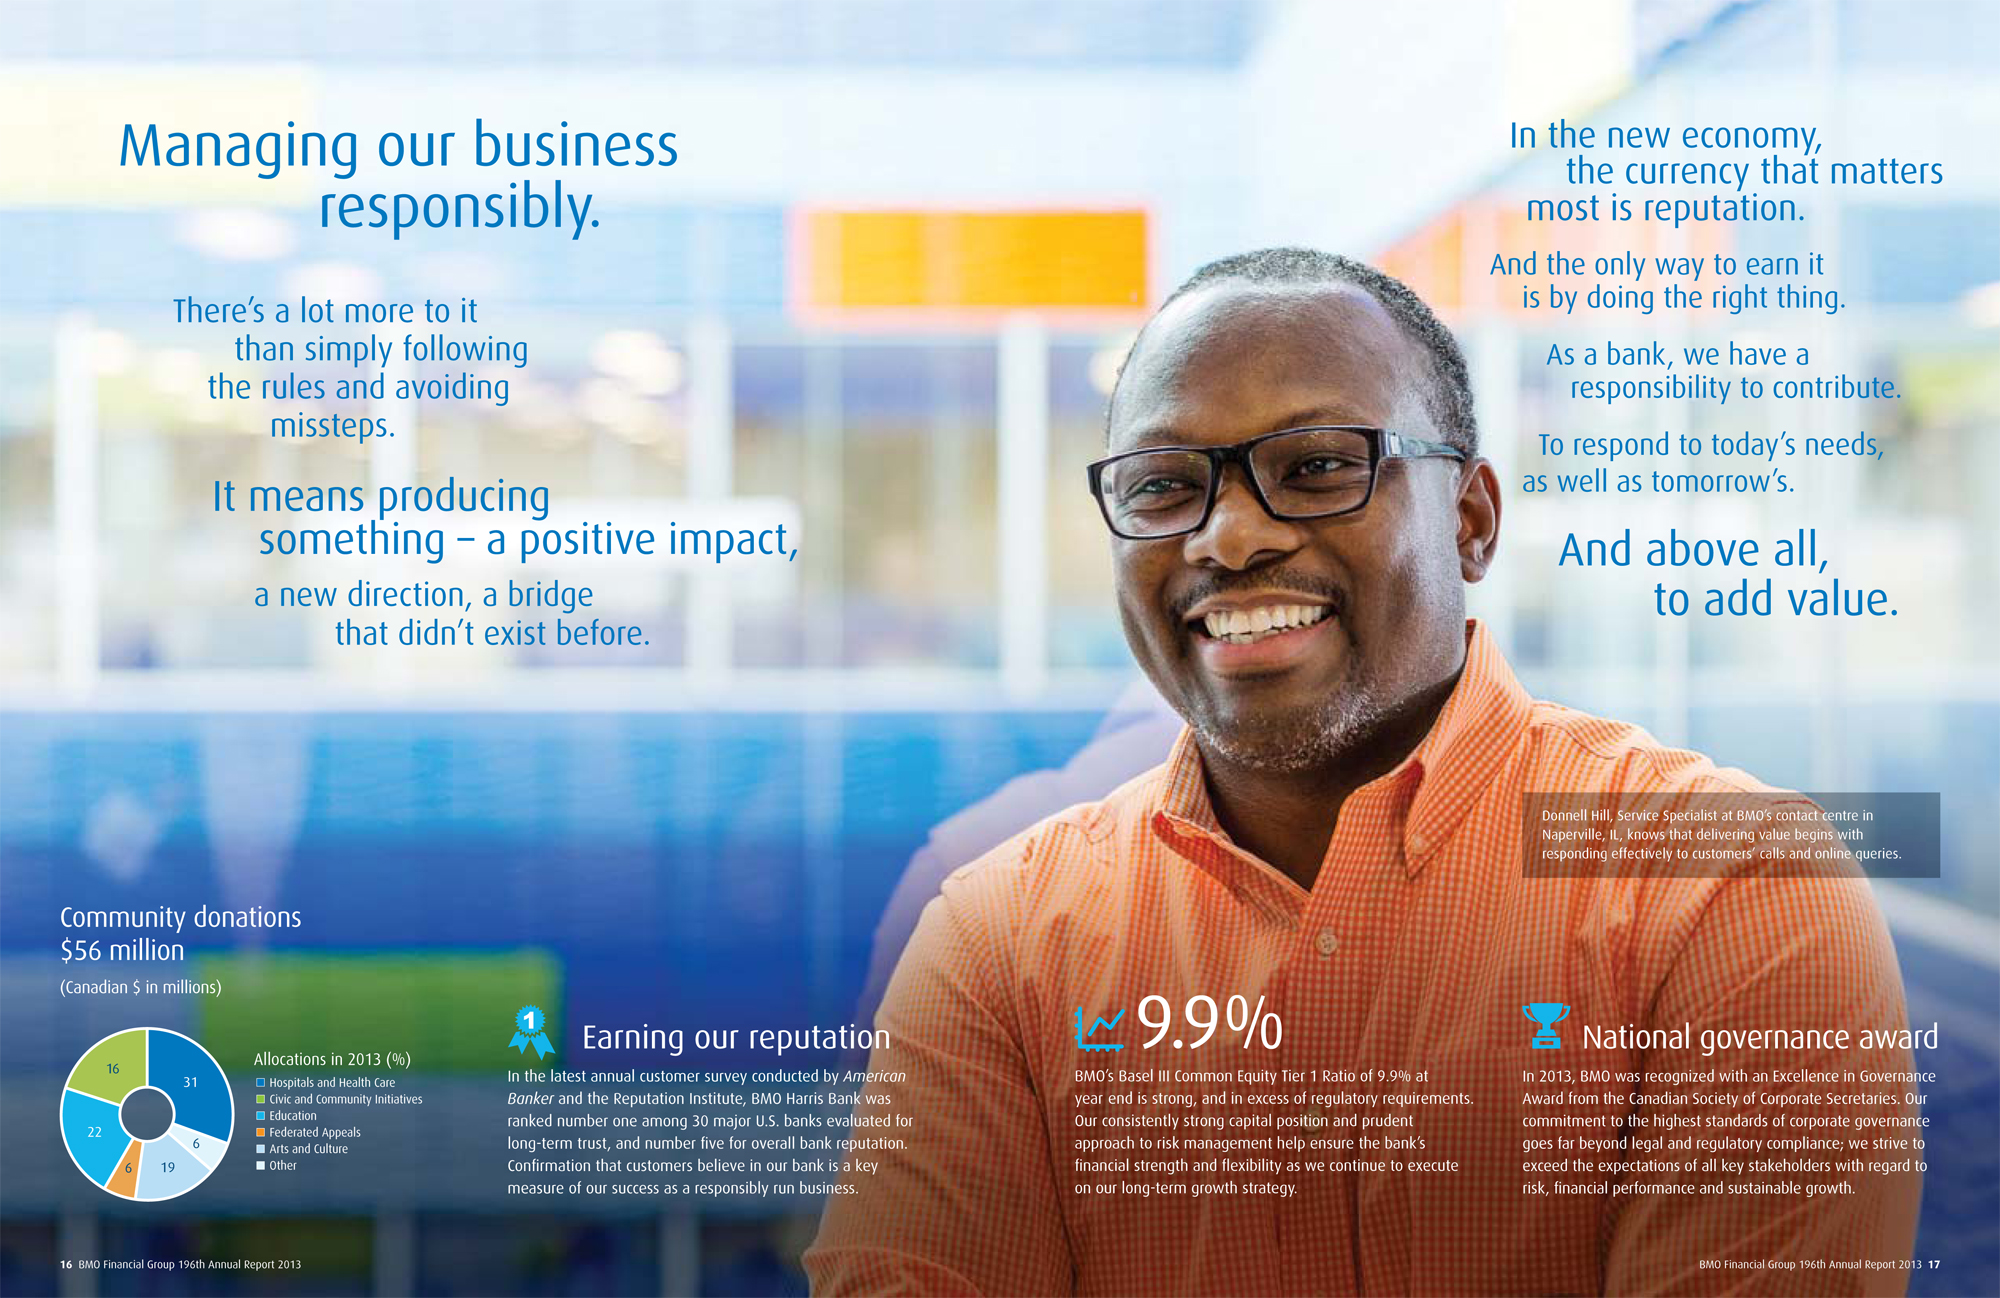 196th Annual Report 2013 - BMO Financial Group